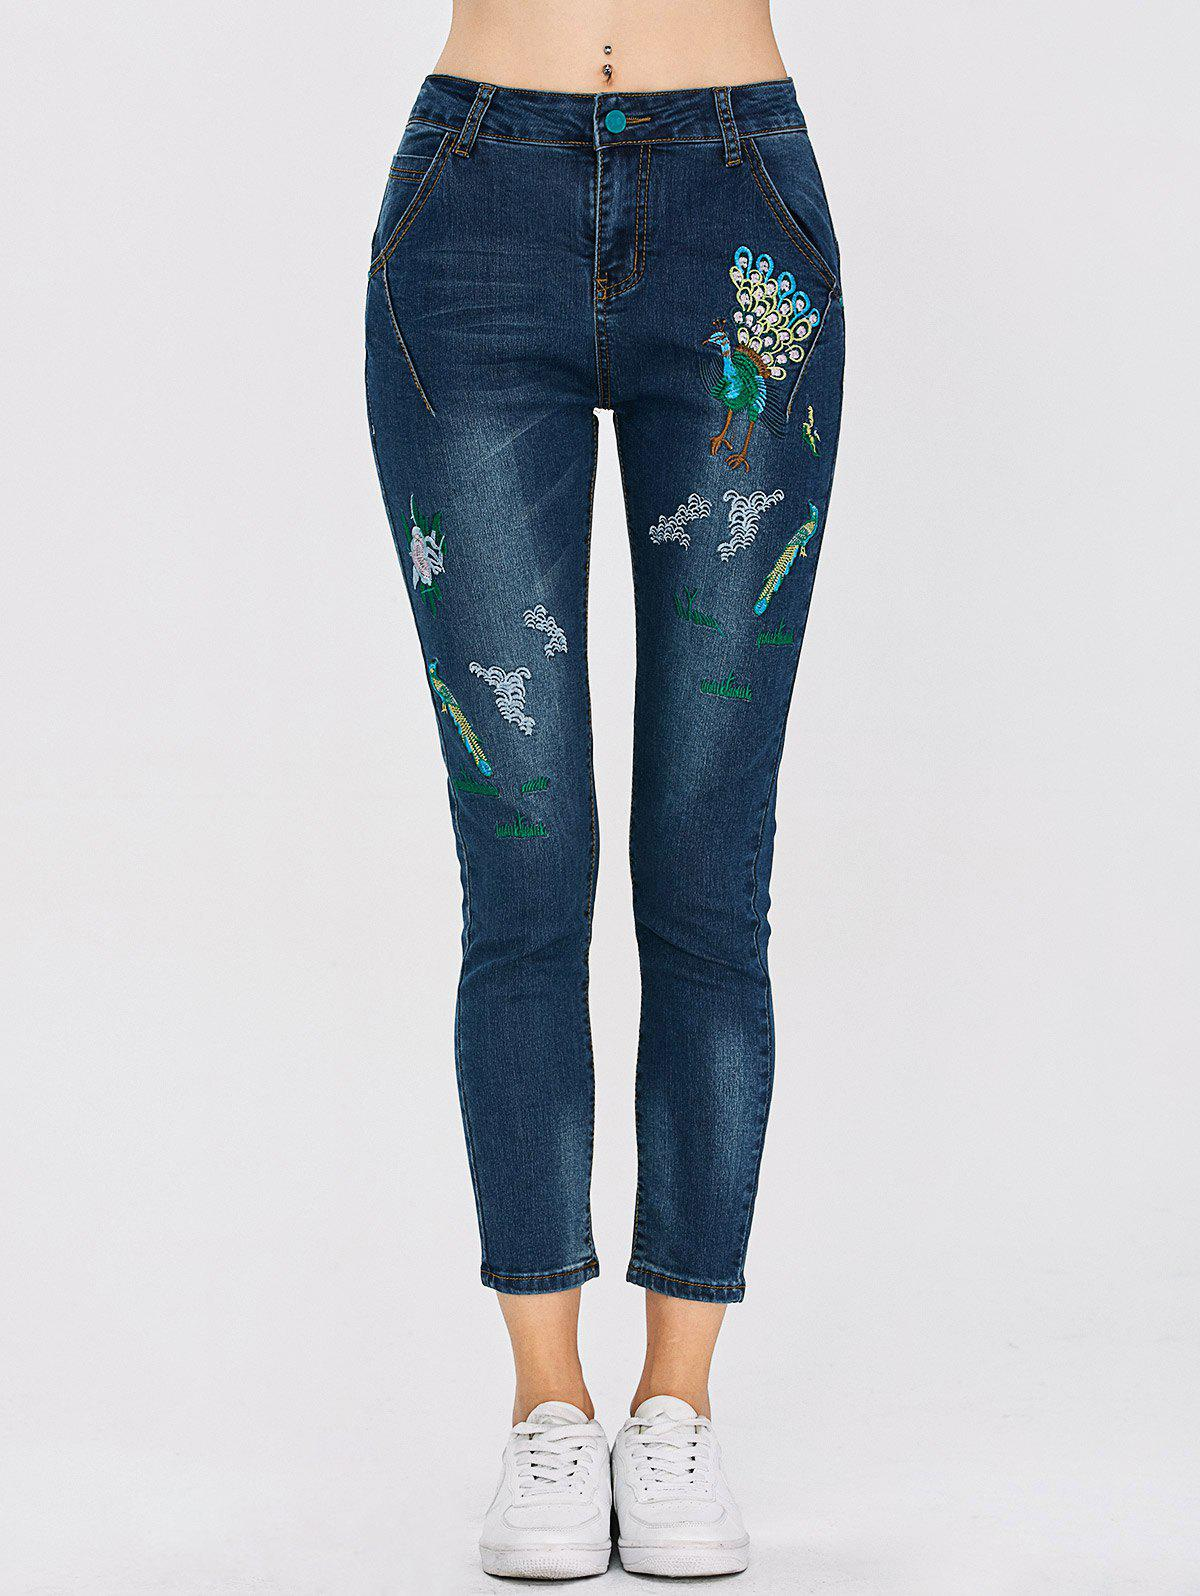 Peacock Embroidered High Waist Jeans - DEEP BLUE 30